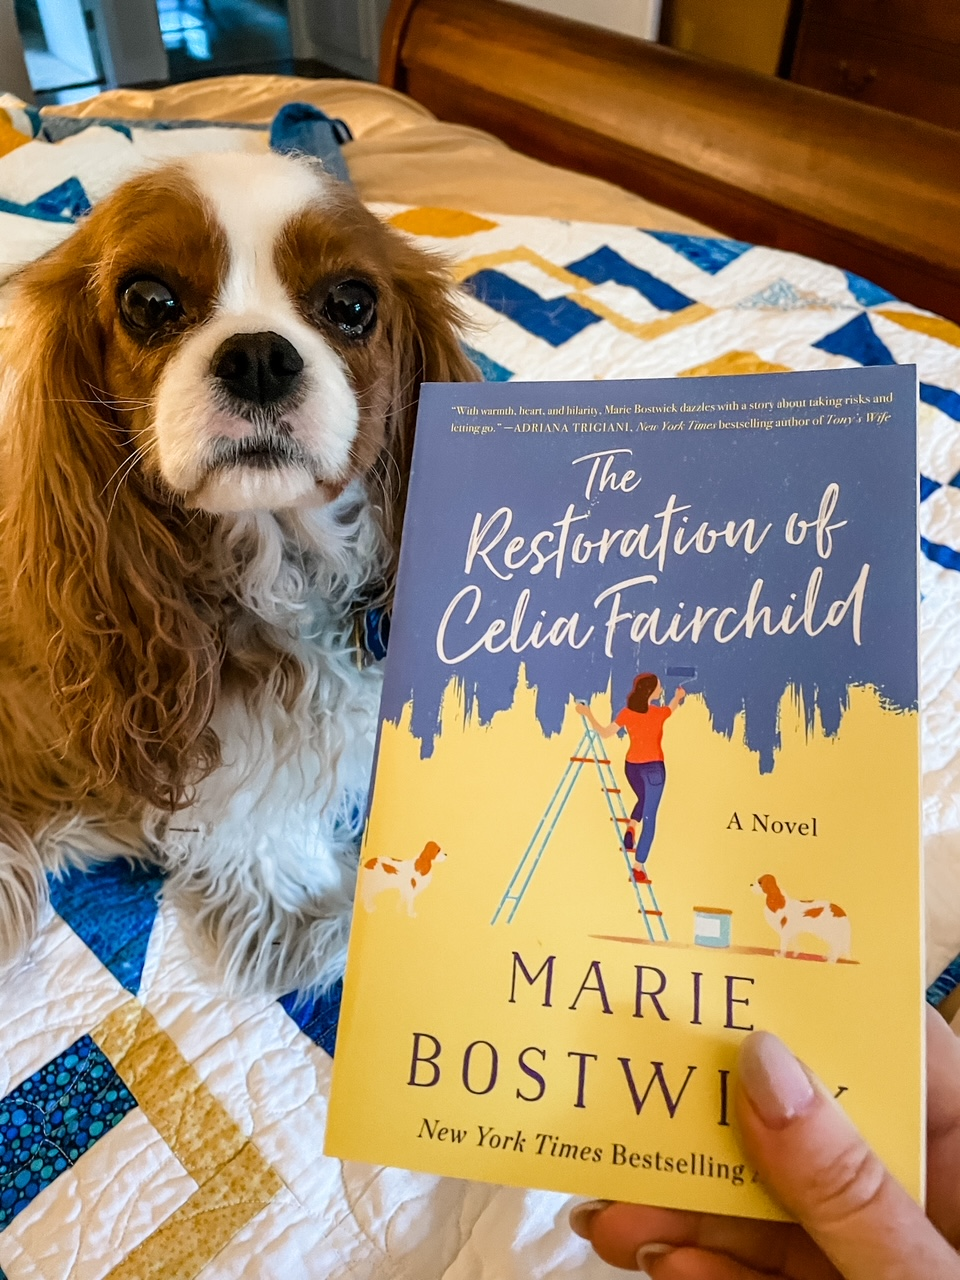 Marie holding a copy of the Restoration of Celia Fairchild above her dog.